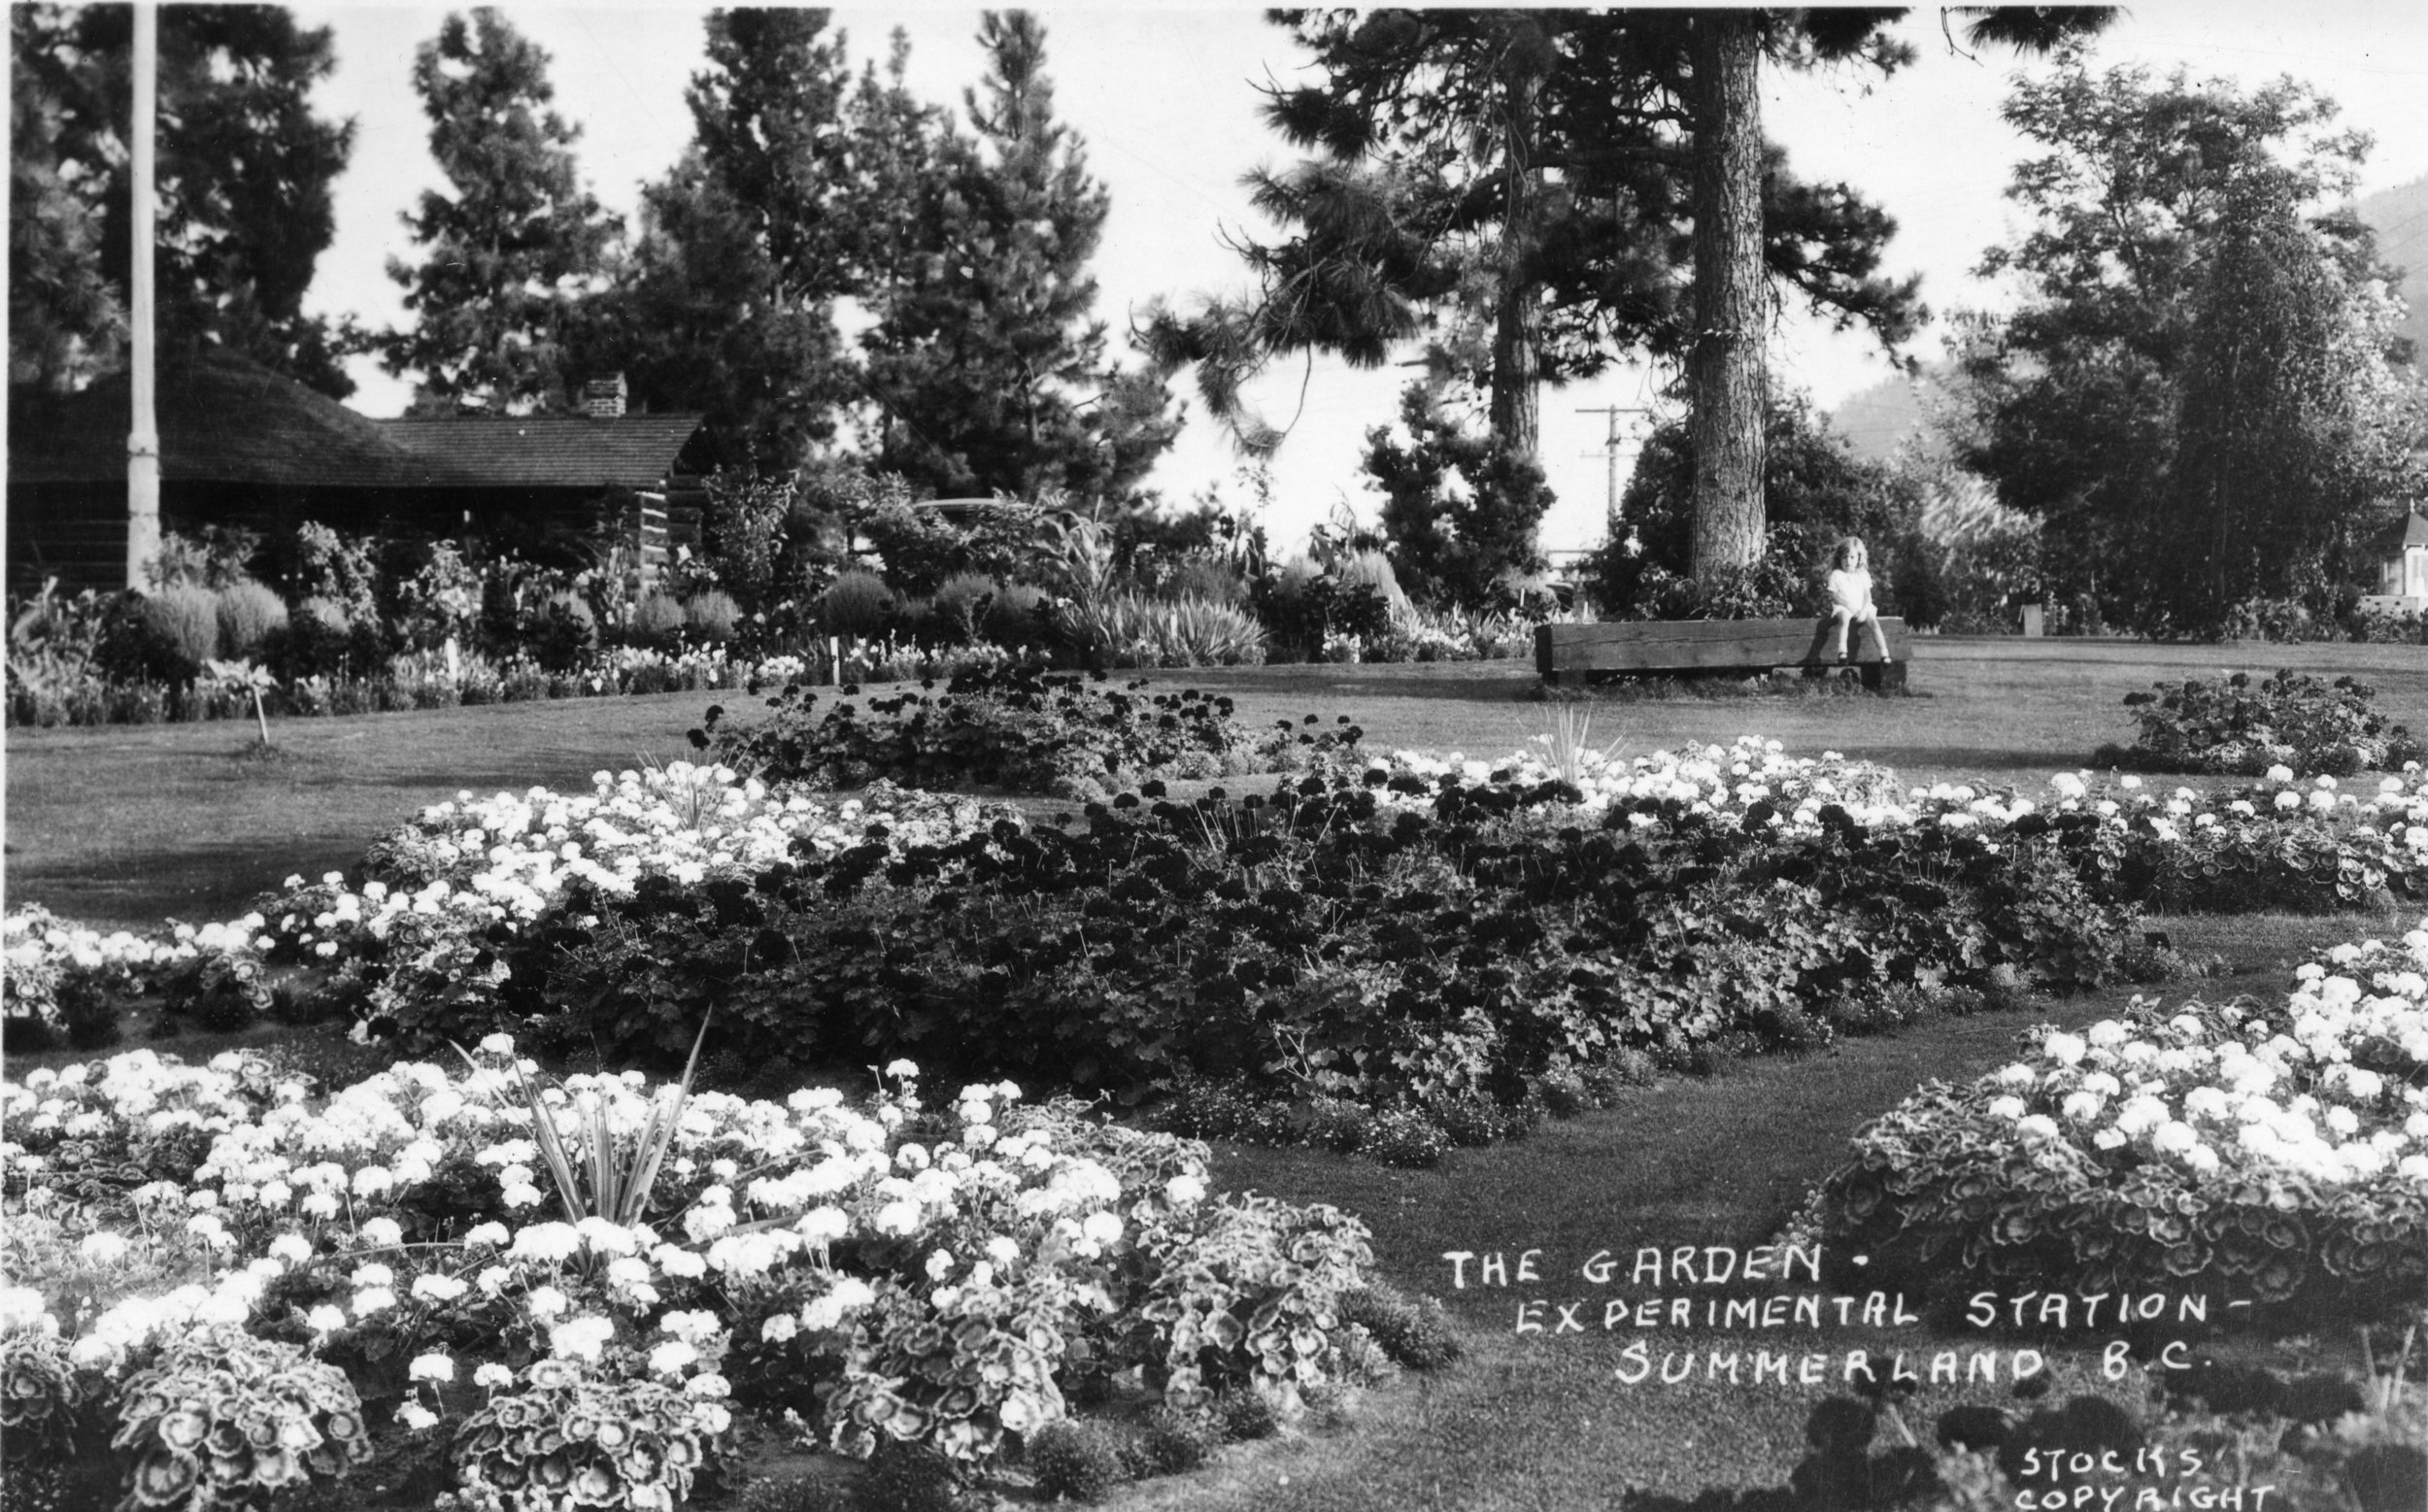 Visiting the Ornamental Gardens? Take this tour before you go. -